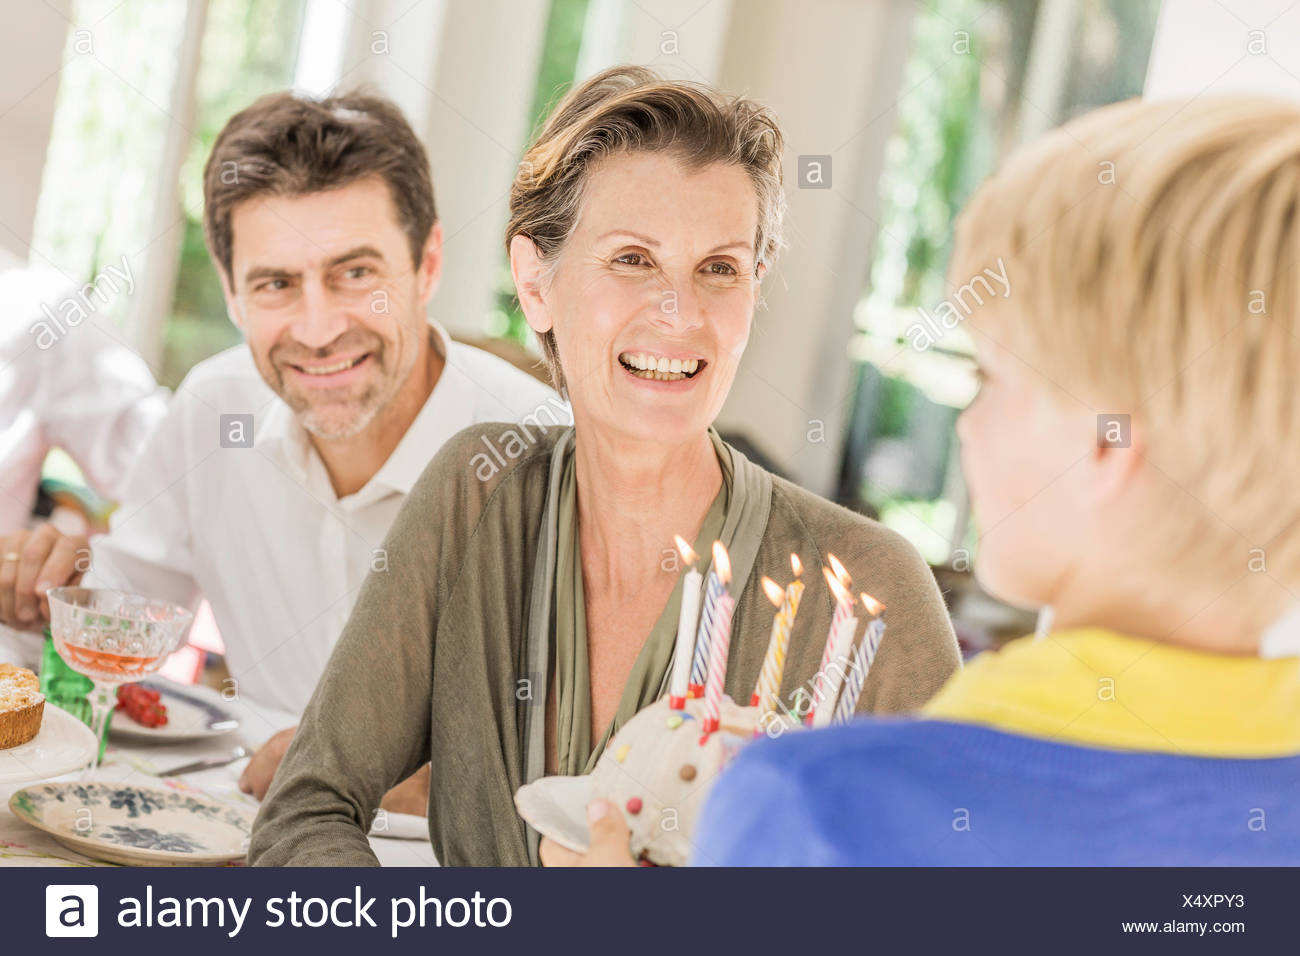 Boy handing birthday cake to grandmother at  party - Stock Image